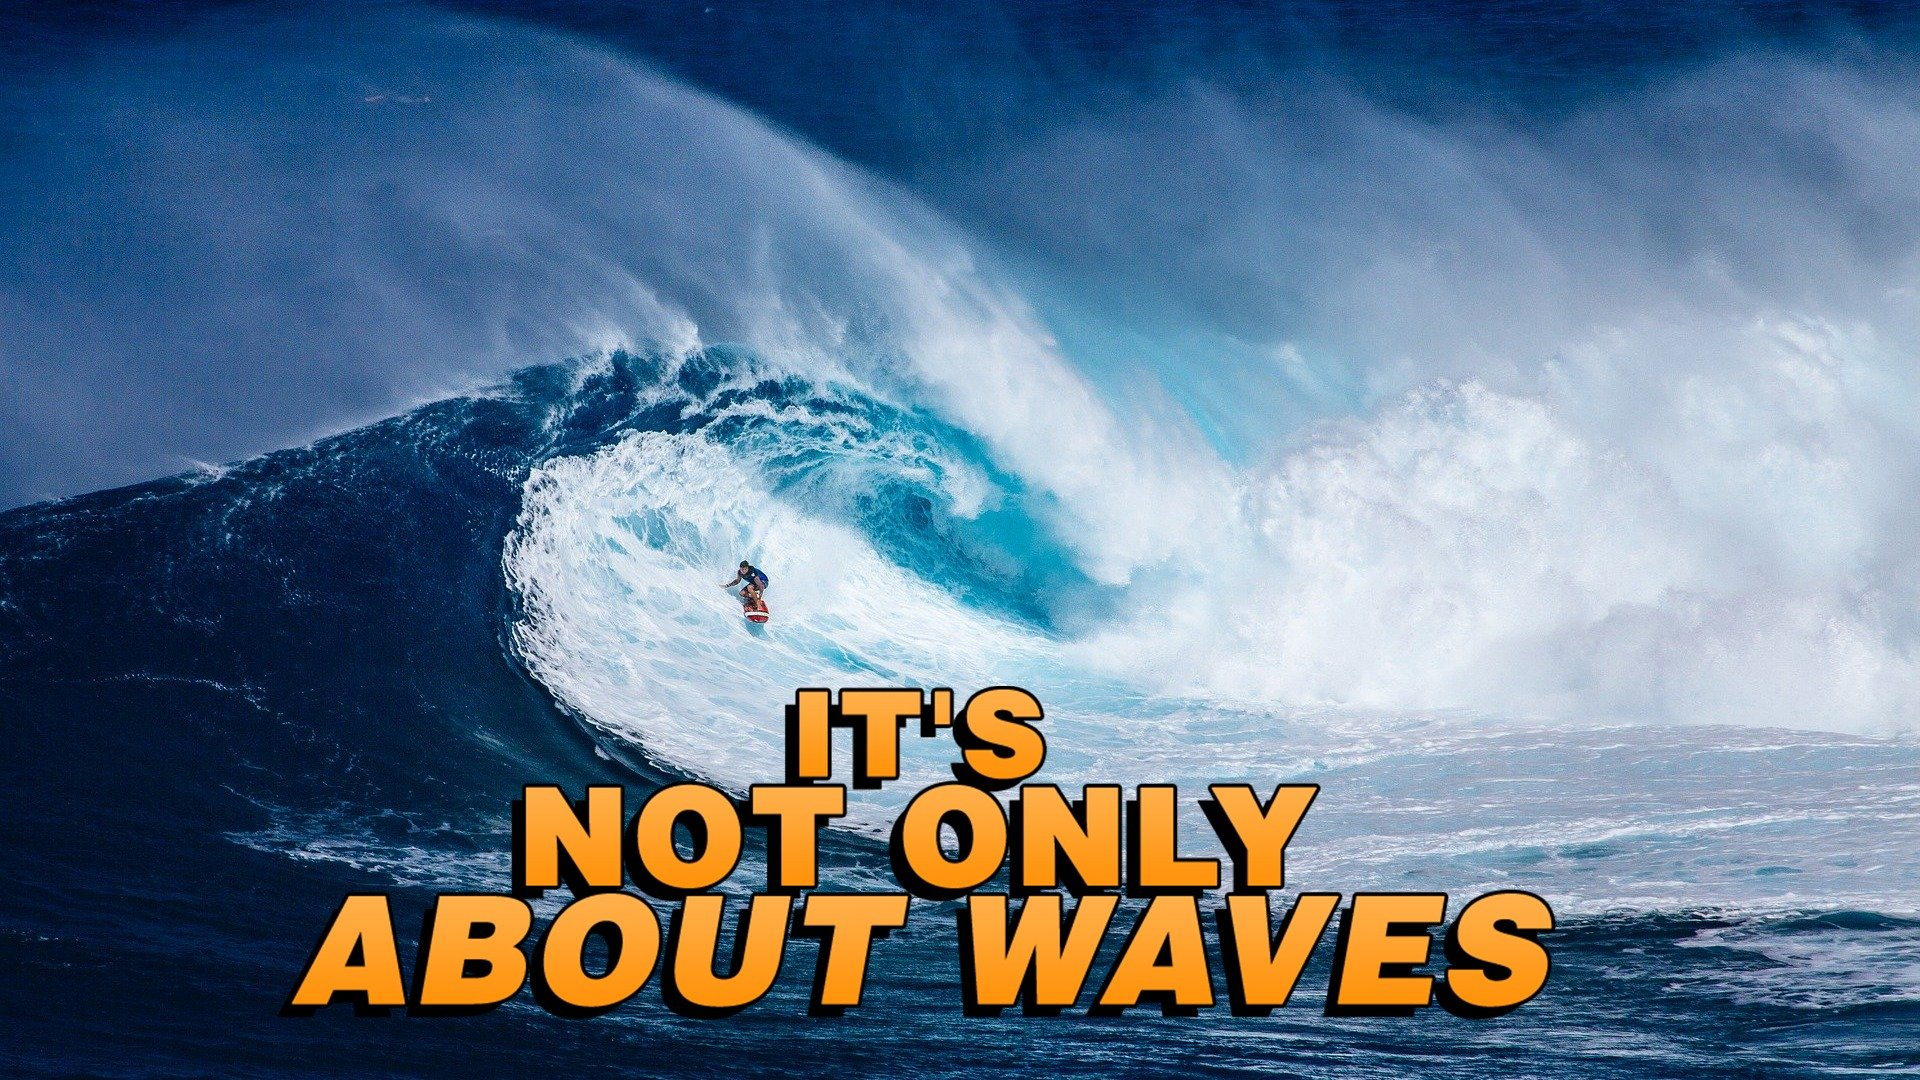 It's Not Only about Waves